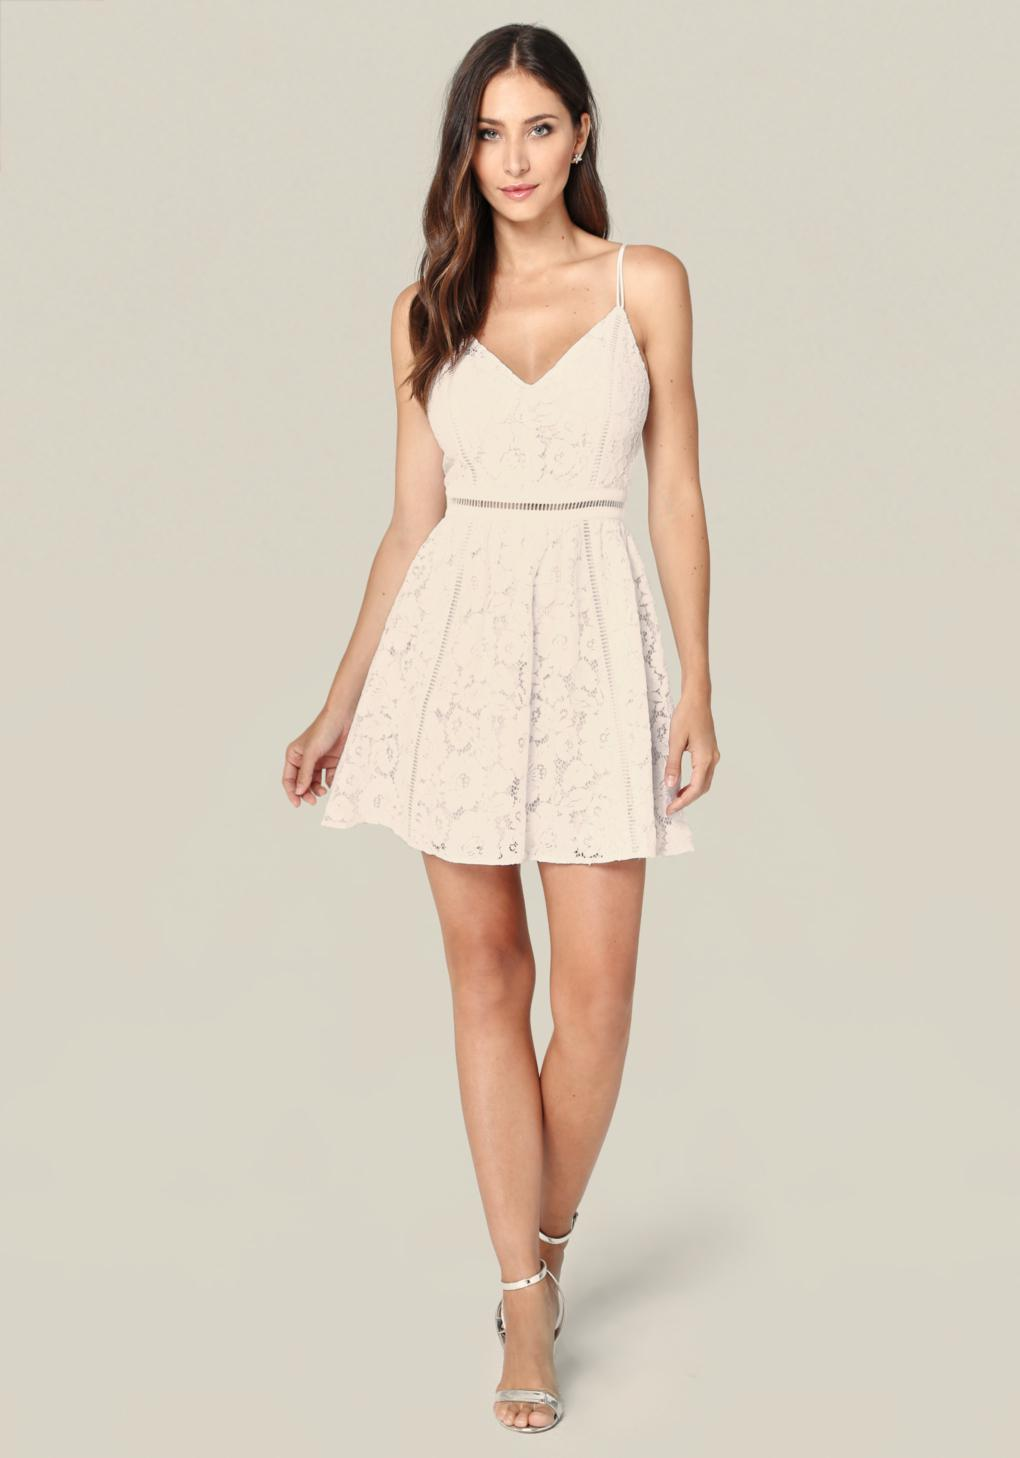 Lyst Bebe Lace Fit Amp Flare Dress In White